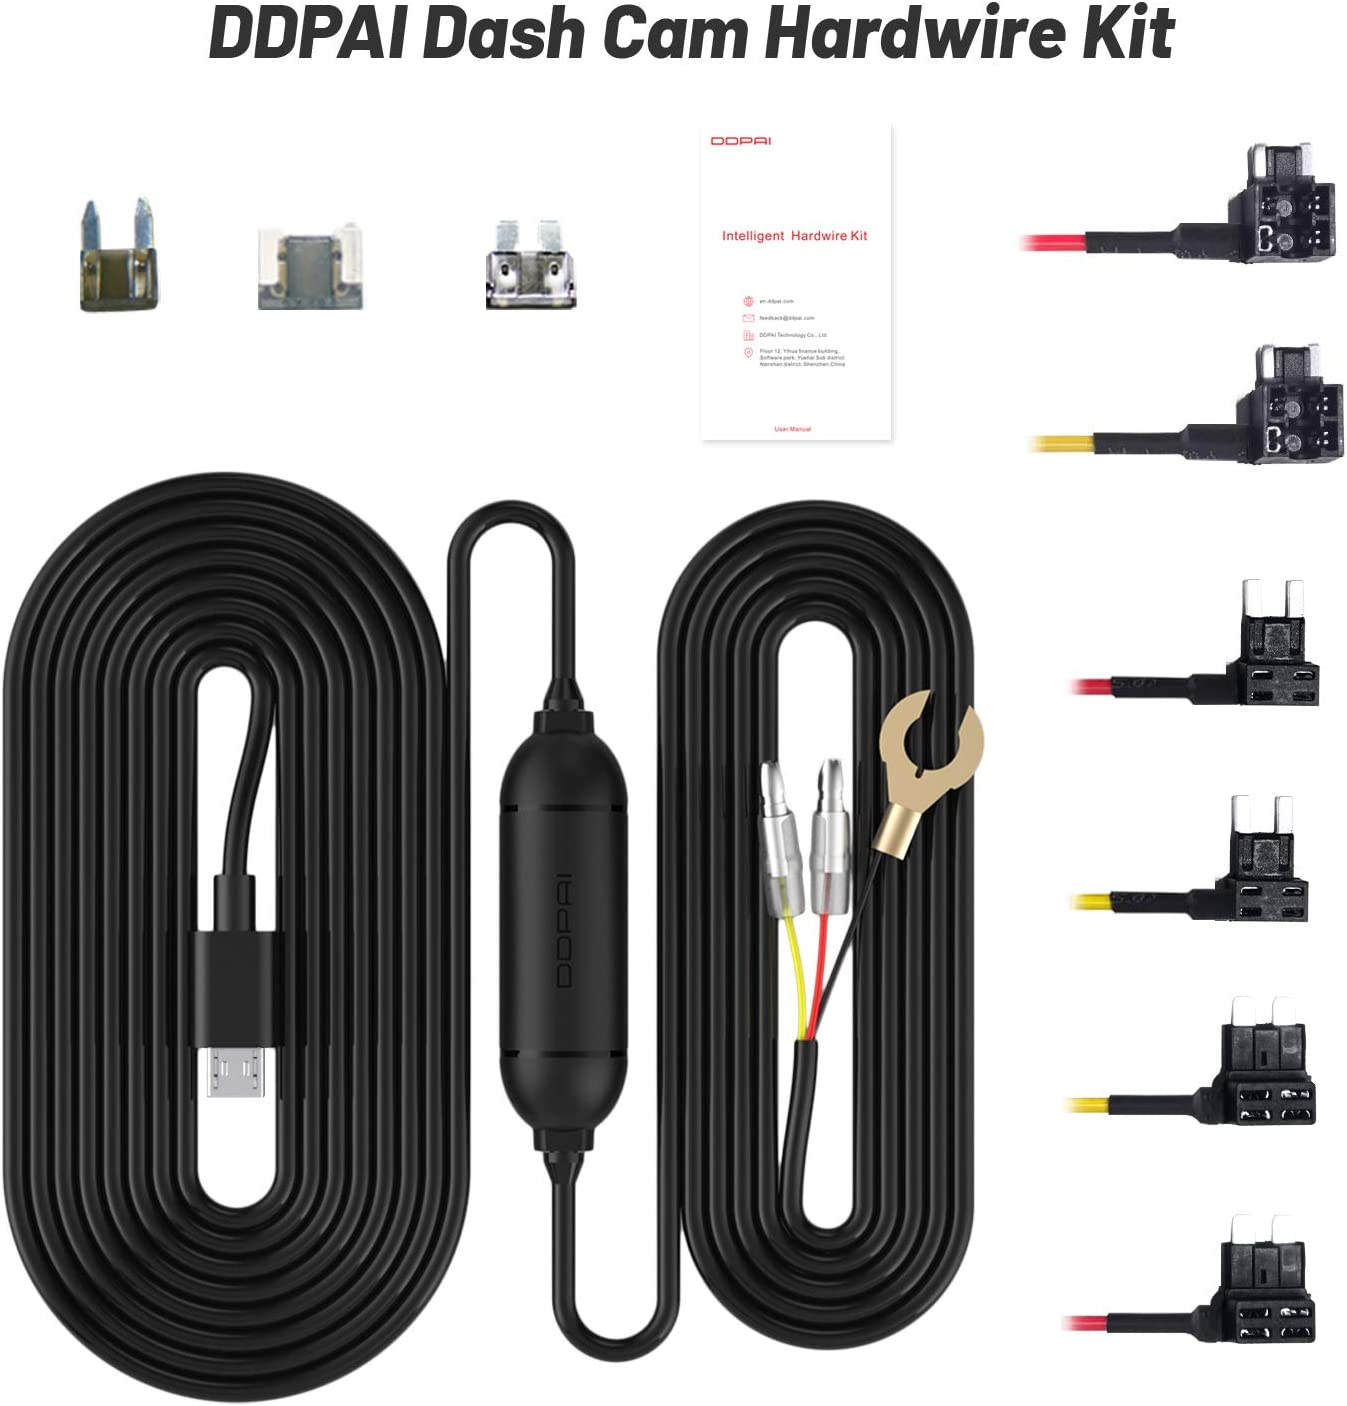 Plozoe 12V-24V to 5V Car Dash Camera Charger Power Cord DDPAI N3 Dash Cam Hardwire Kit,Mola N3 Dash Cam USB Hard Wire Kit Fuse for Dashcam Gift 3 Fuse Tap Cable and Installation Tool(11.5ft)